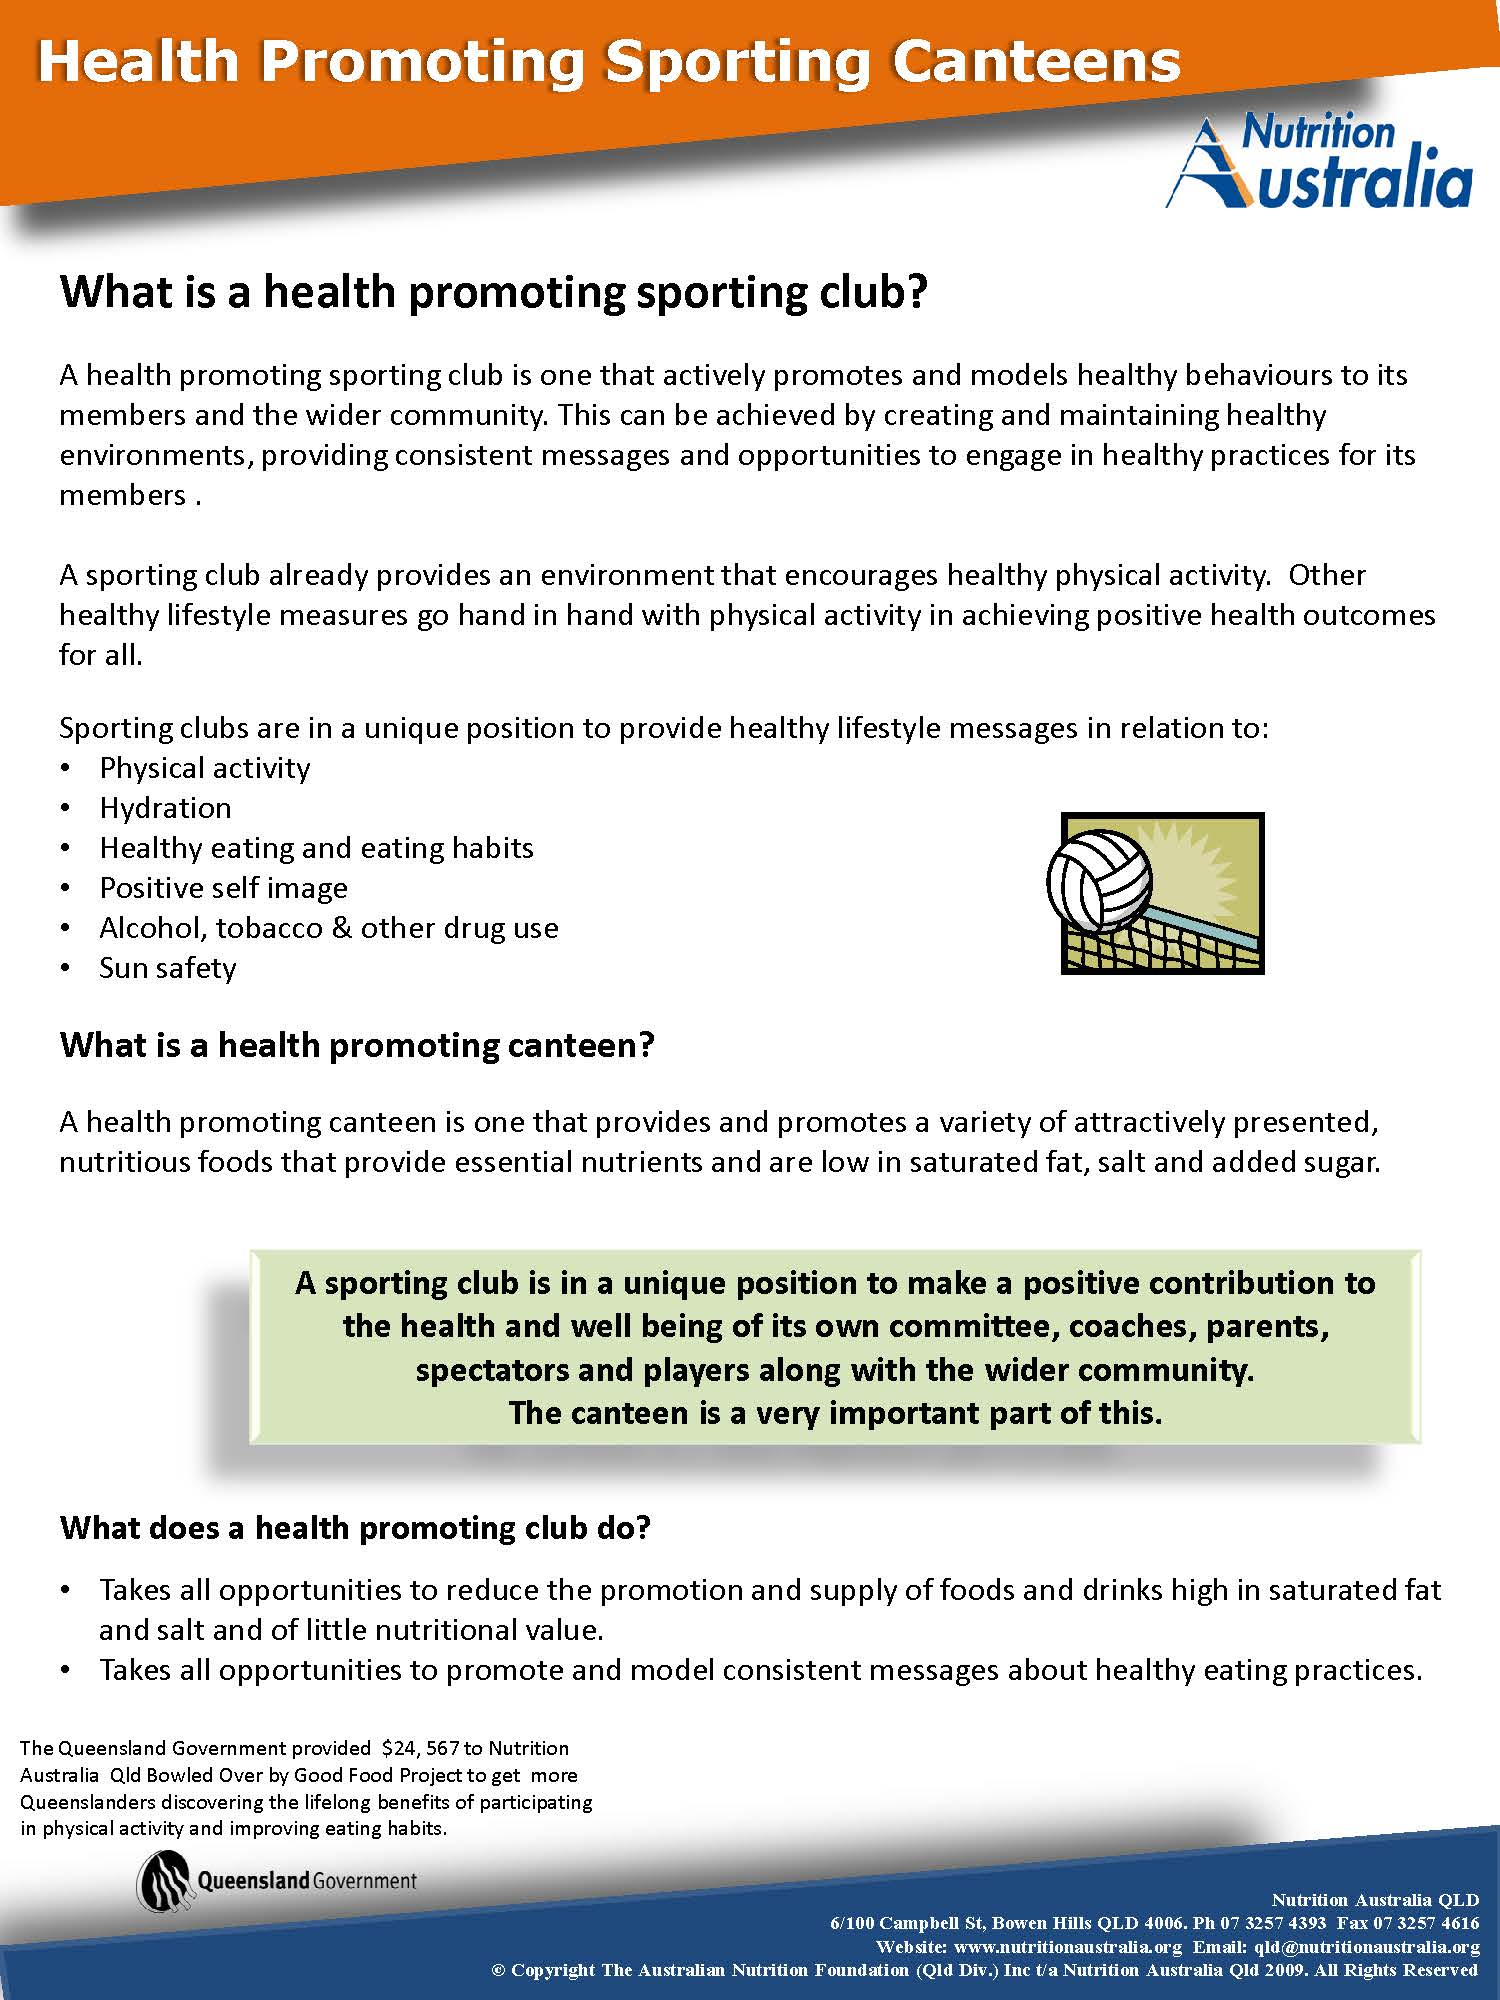 What is a Health Promoting Sporting Club doc